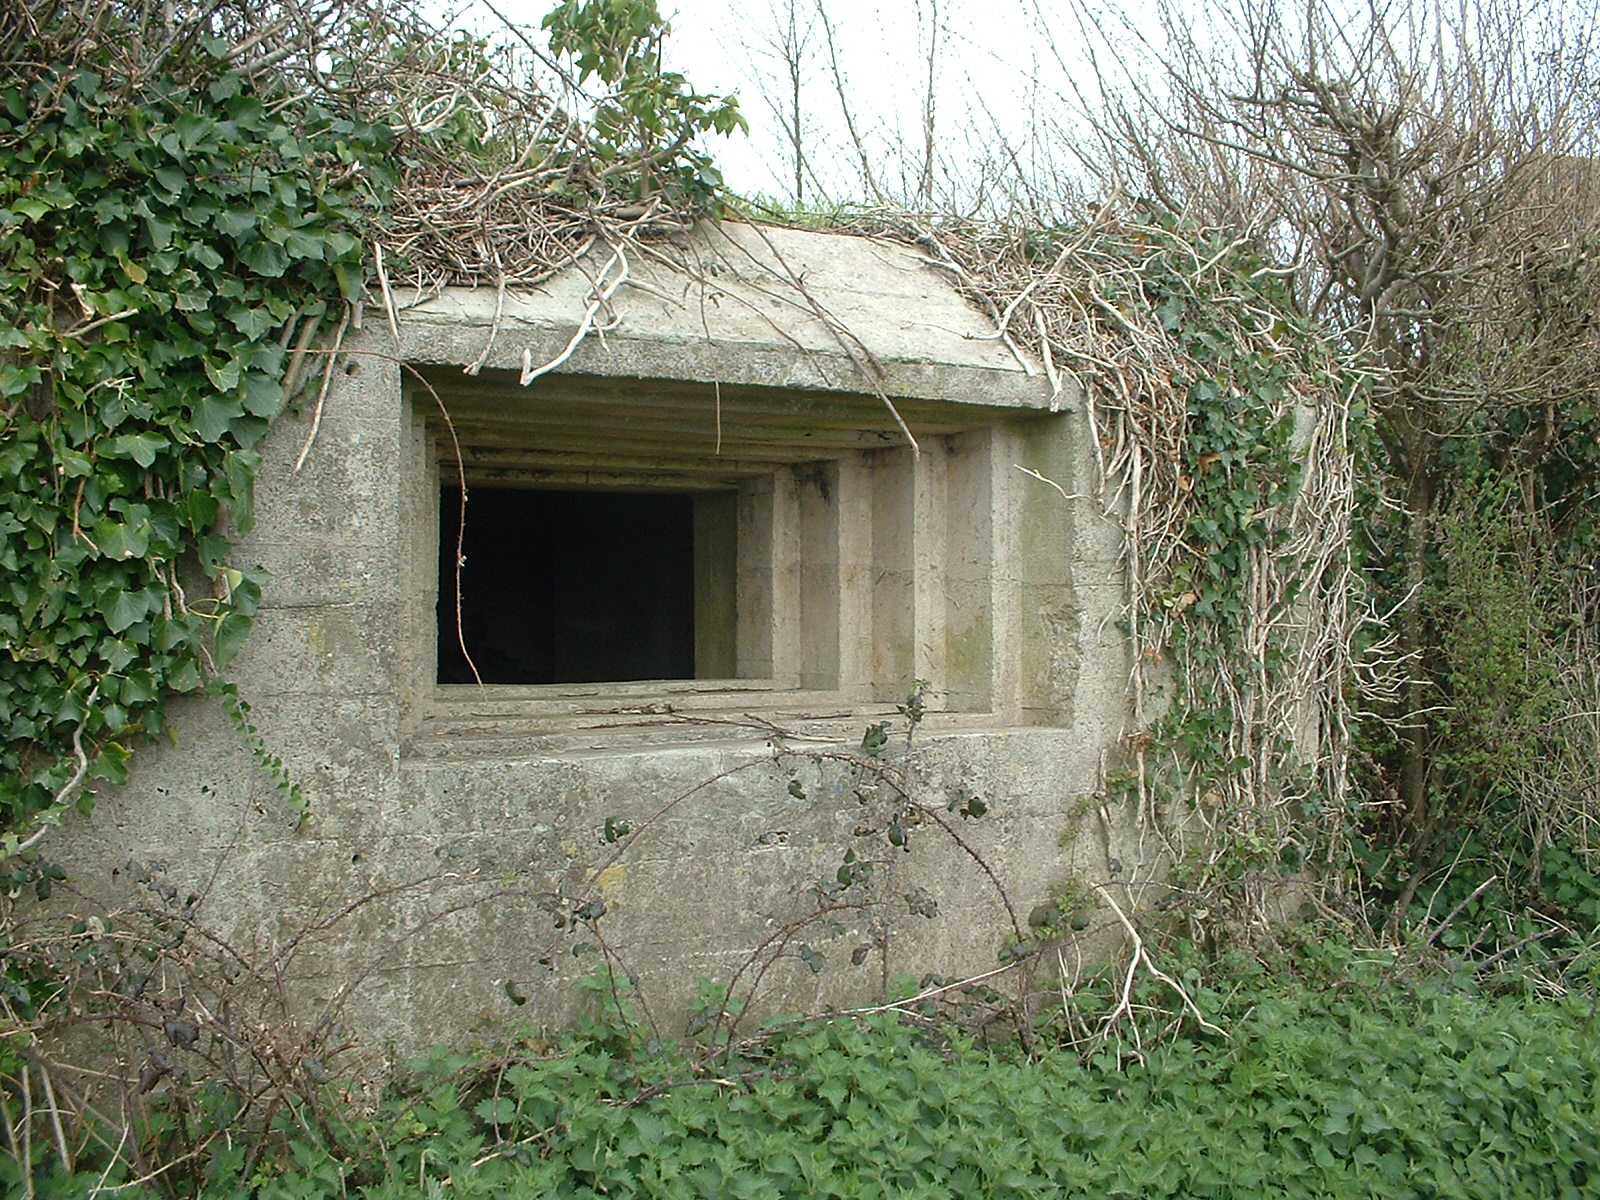 https://upload.wikimedia.org/wikipedia/commons/f/fa/Pillbox_embrasures%2C_Large%2C_on_Taunton_Stop_Line.JPG